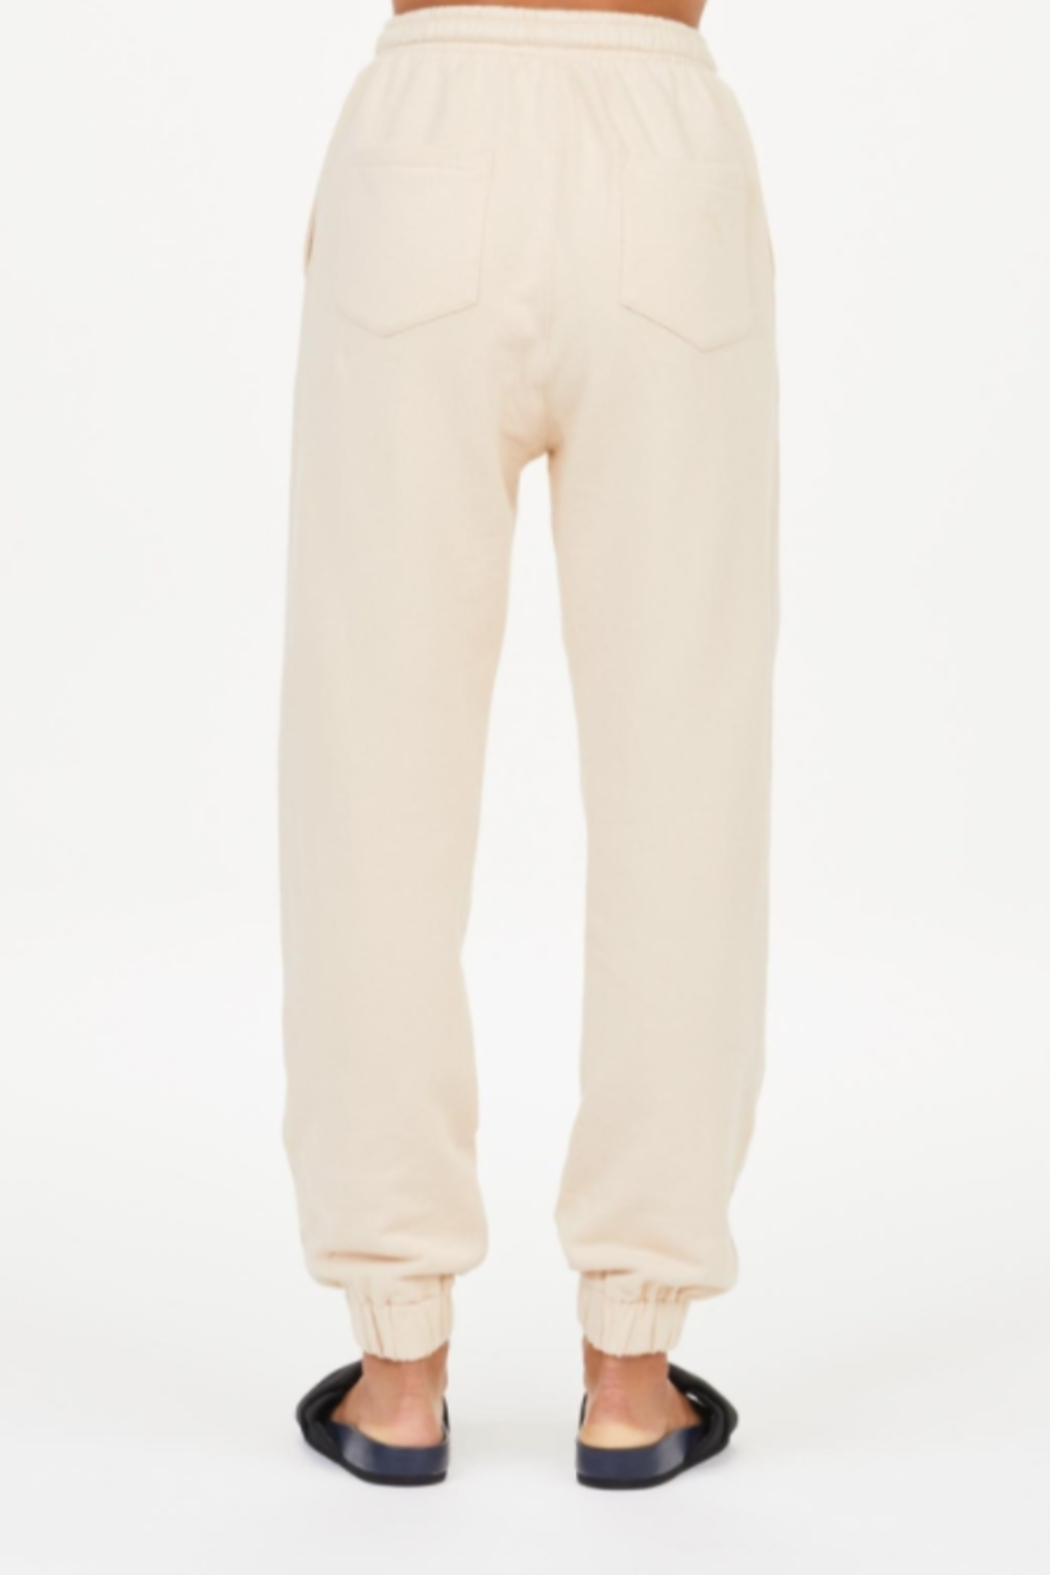 Upside Coveted Cream Joggers - Side Cropped Image